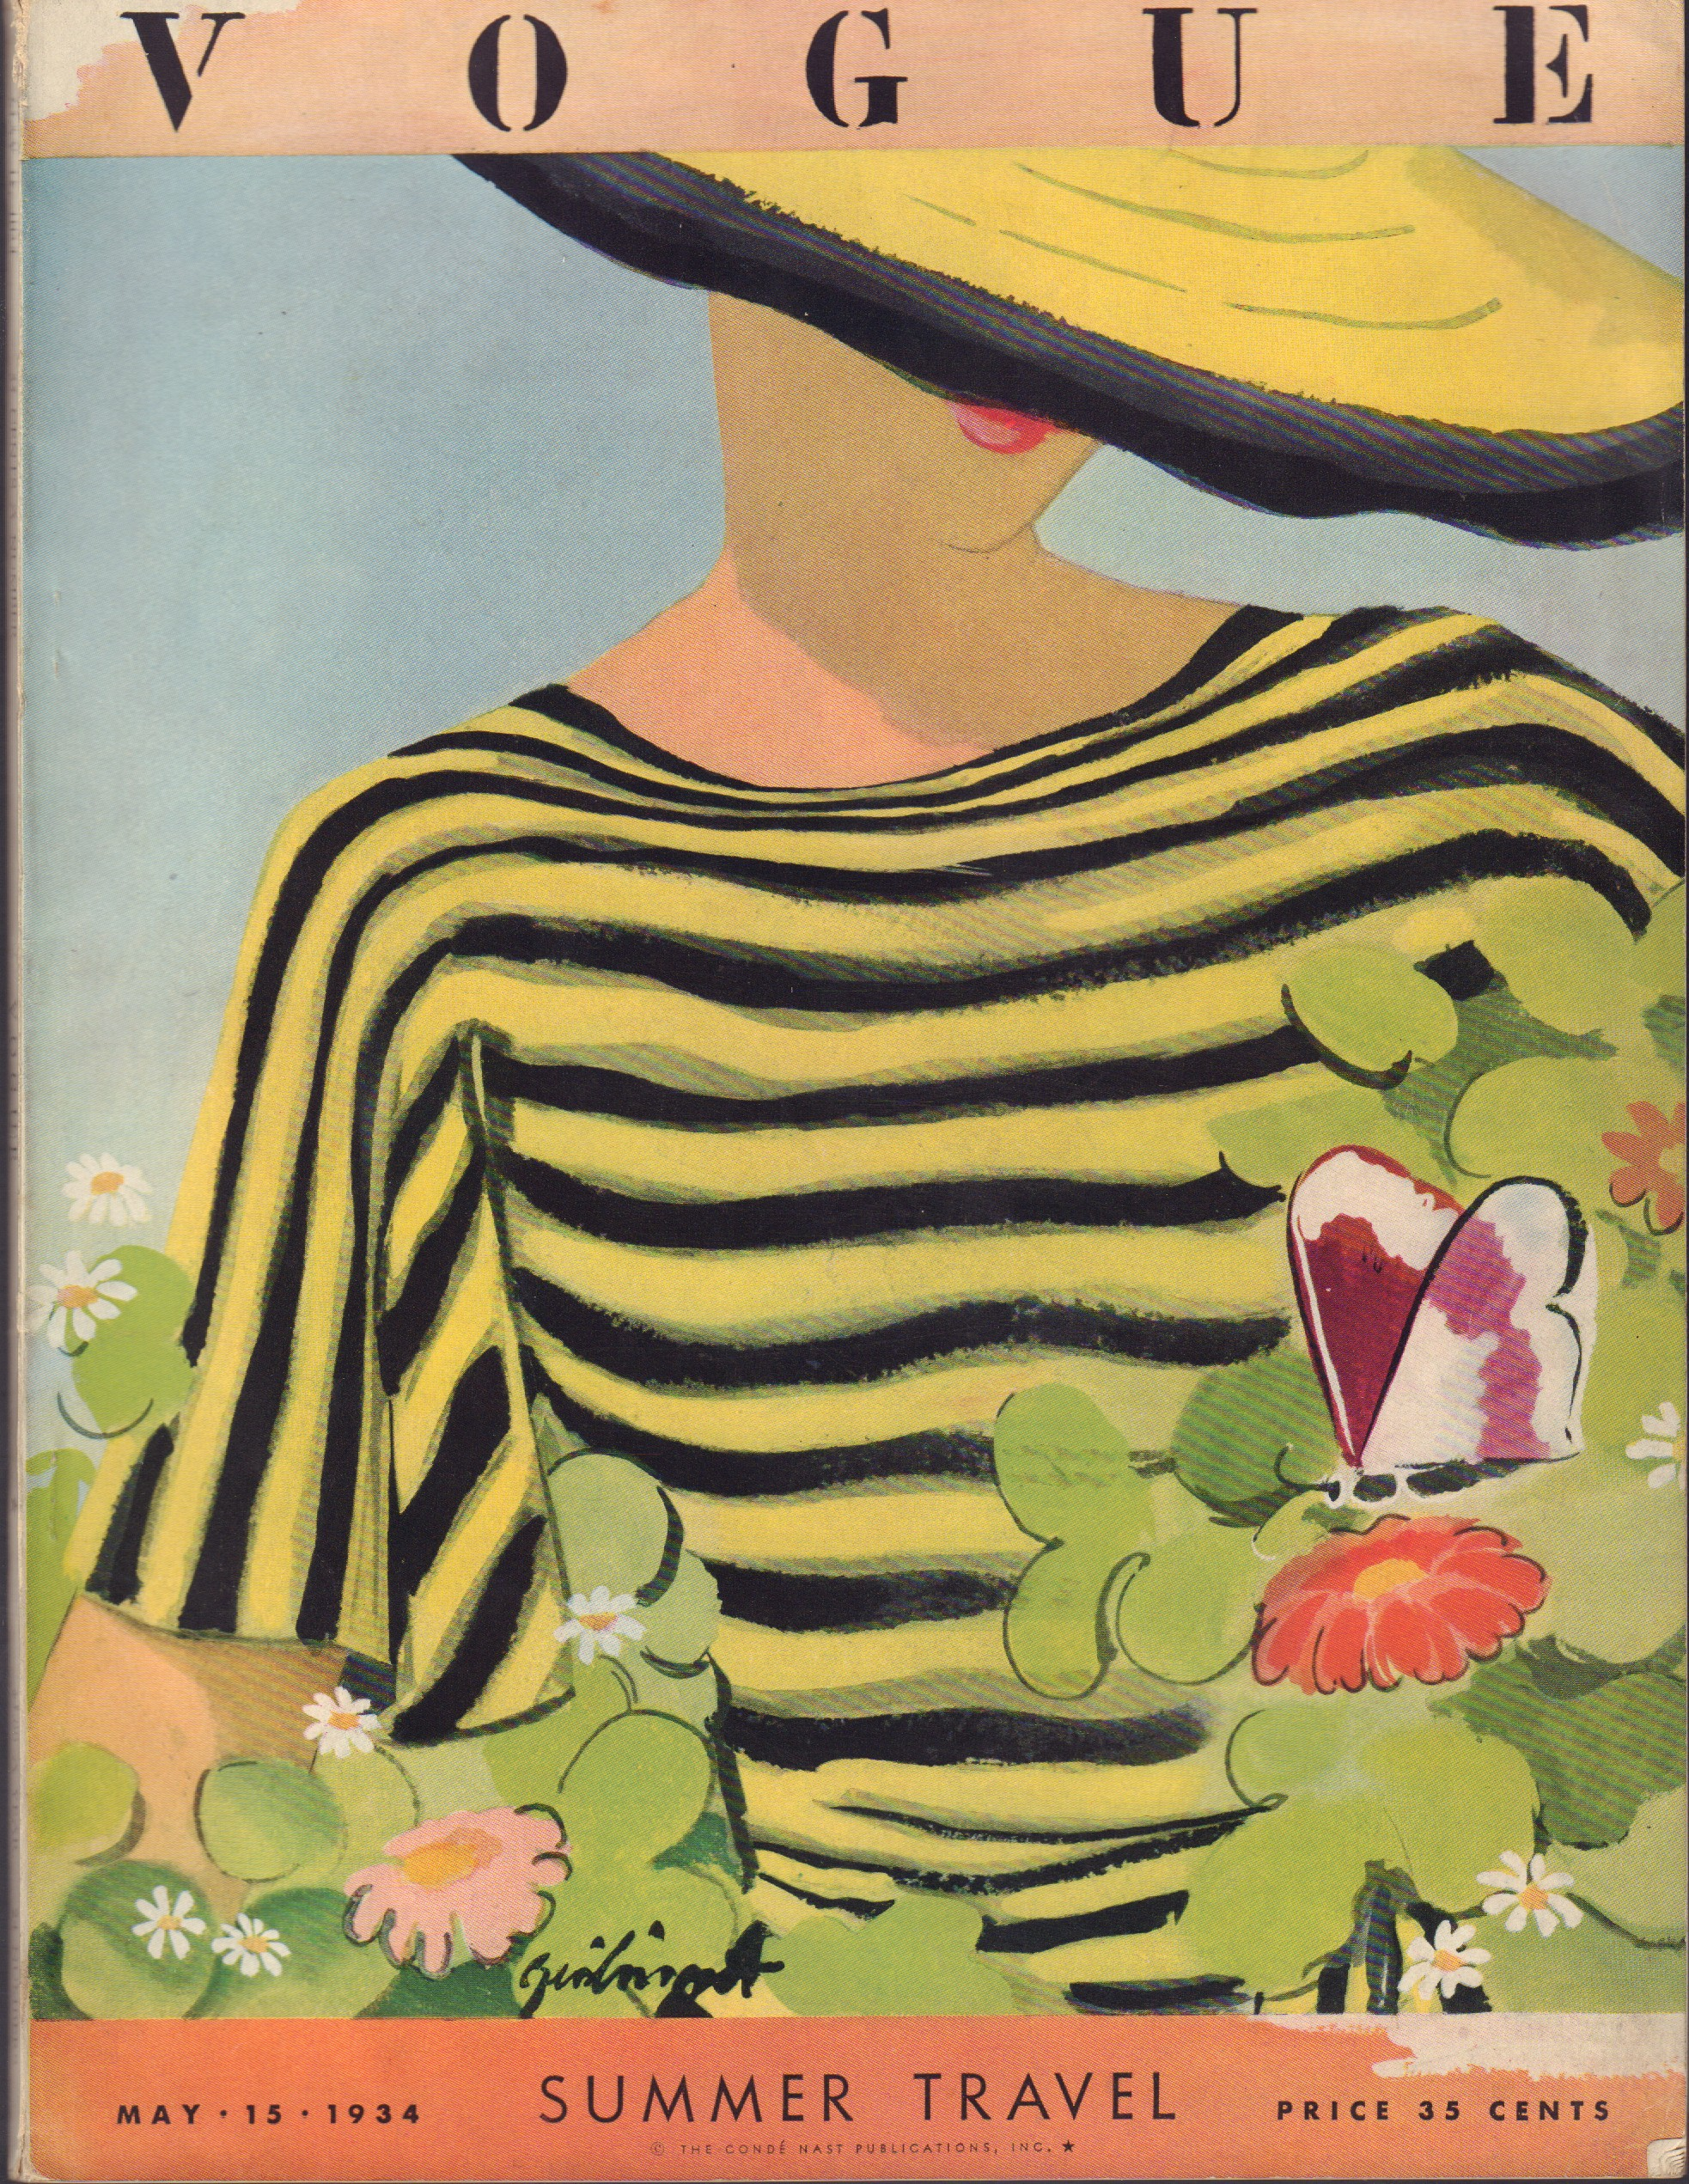 Image for Vogue May 15, 1934